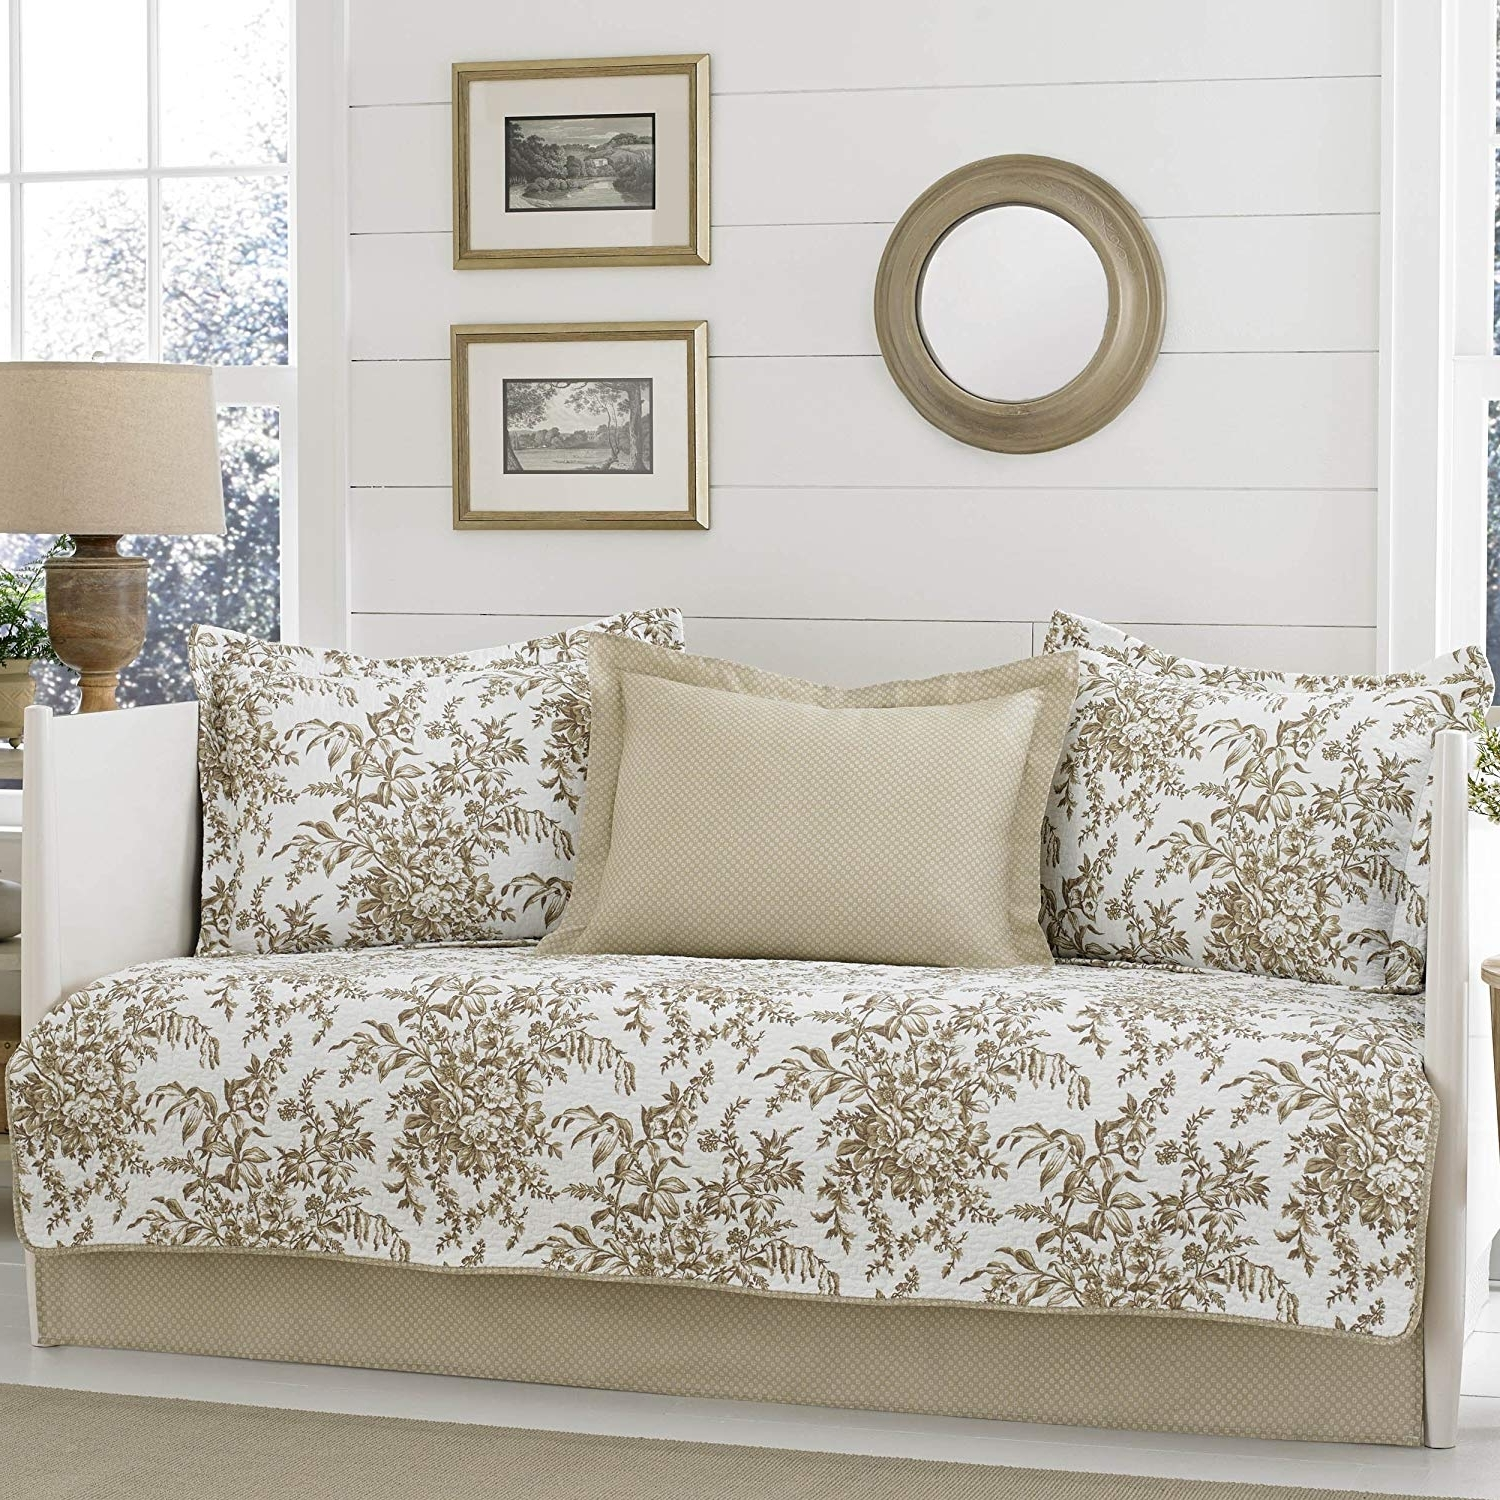 Preferred Amazon: Laura Ashley Bedford Daybed Set, Twin, Mocha: Home & Kitchen Regarding Garten Delft Skirted Side Chairs Set Of  (View 17 of 20)